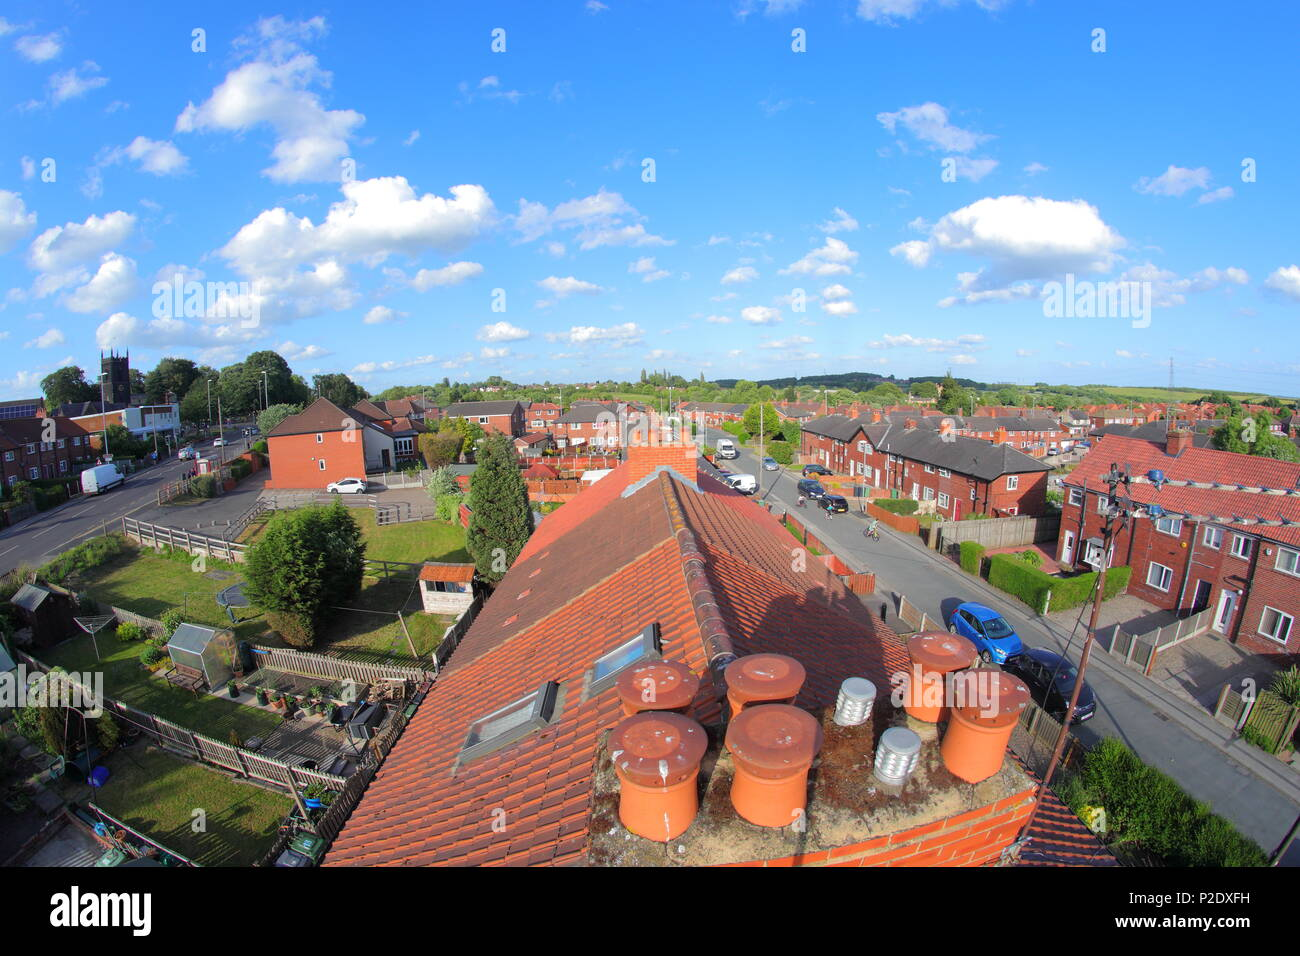 St Marys Avenue in Swillington , East Leeds, viewed from the loft of terraced housing using a large 8 meter selfie stick - Stock Image